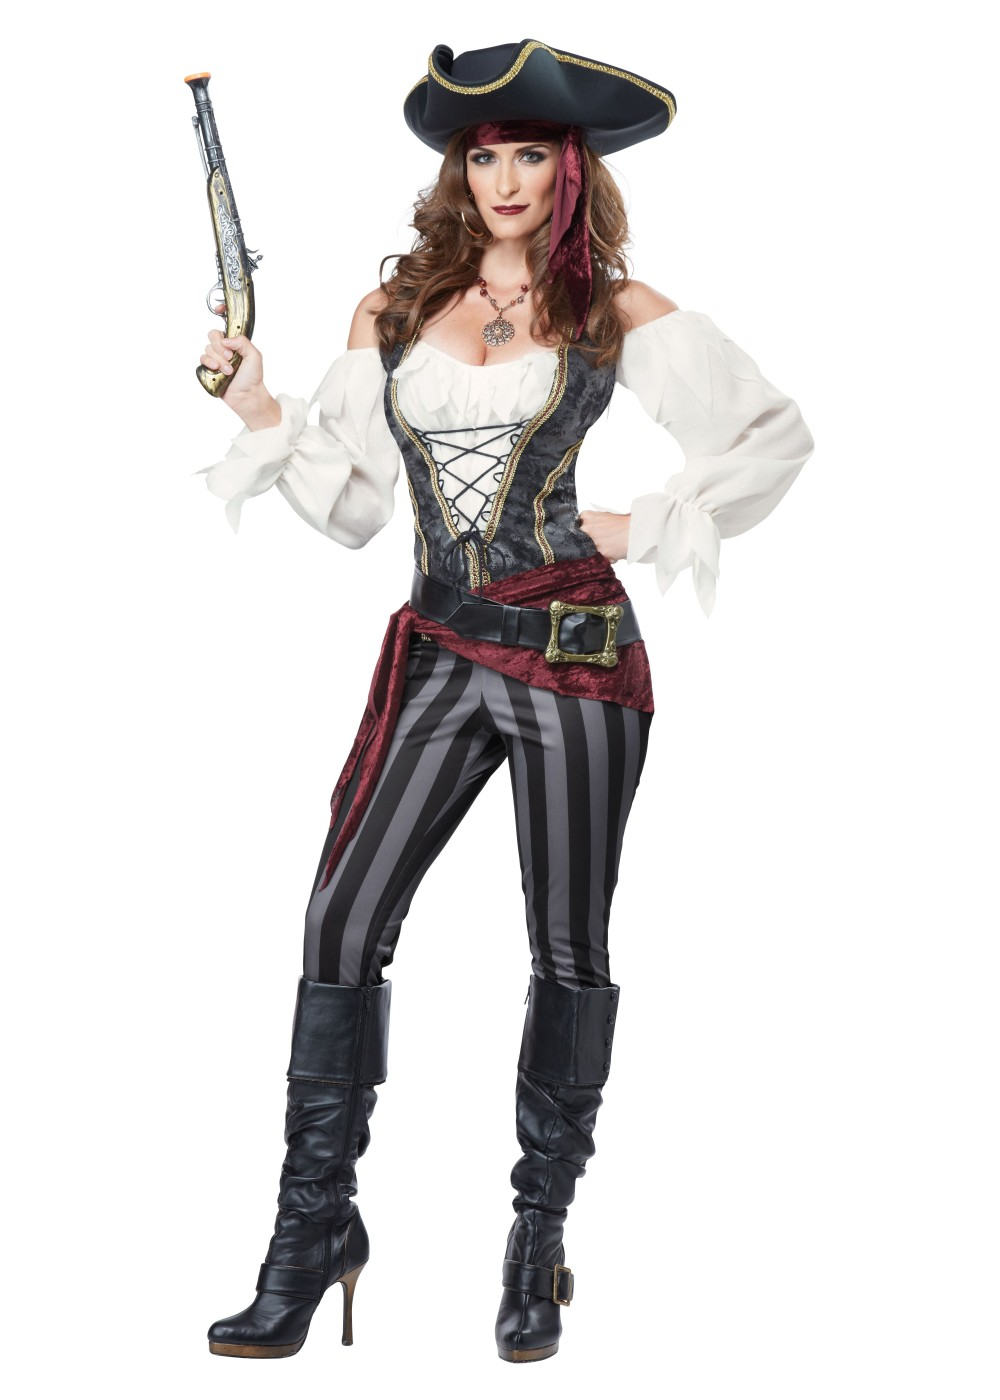 Latino Amateur Naked Pirate Costumes For Women